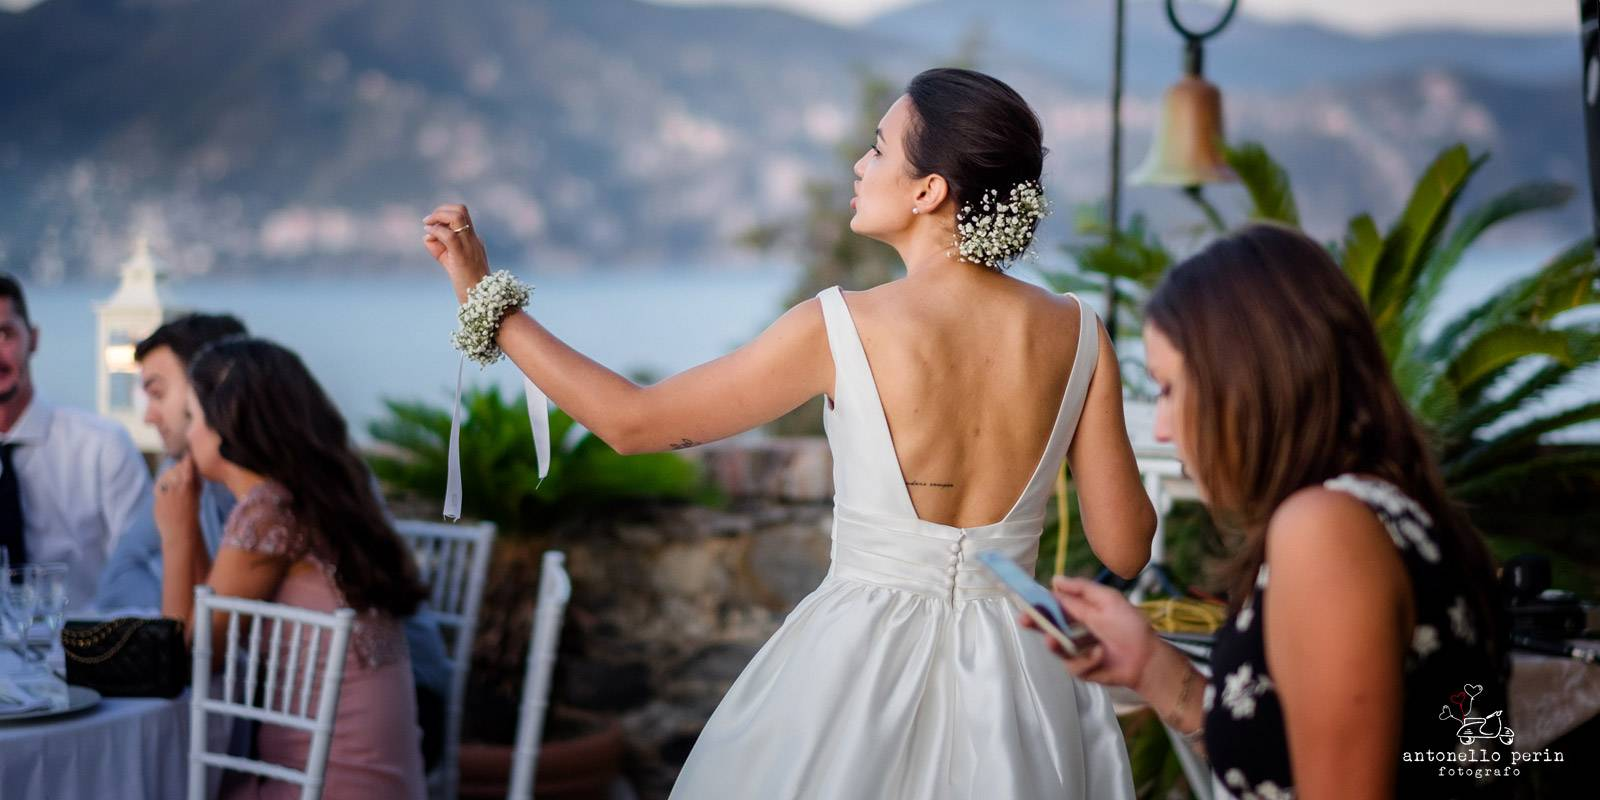 WEDDING PHOTOGRAPHER LAKE GARDA, SIRMIONE,BRESCIA,VERONA,MANTOVA